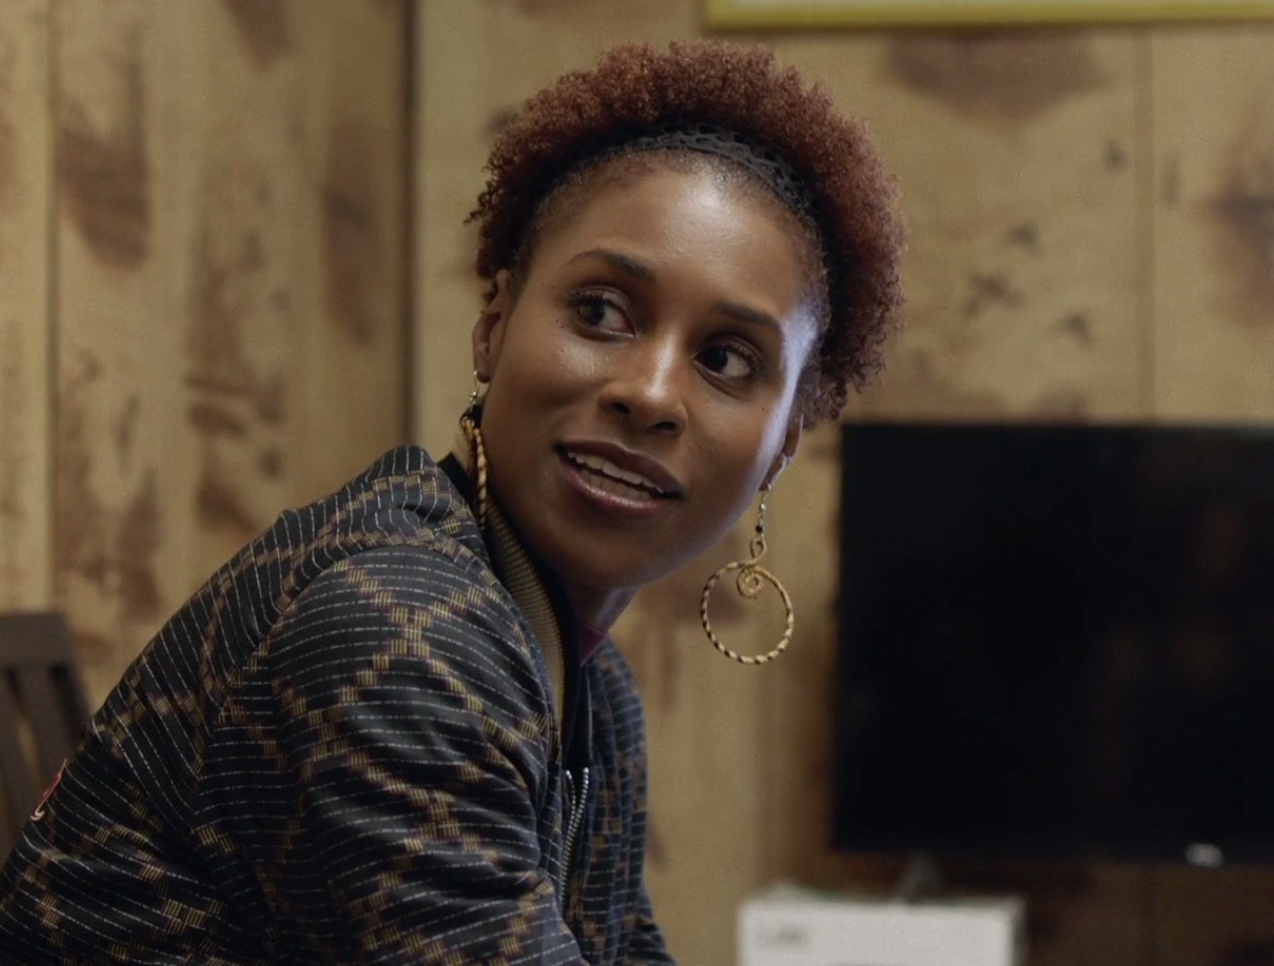 Wash and Go Puff Issa Rae Wore on HBO Insecure Hella Blow